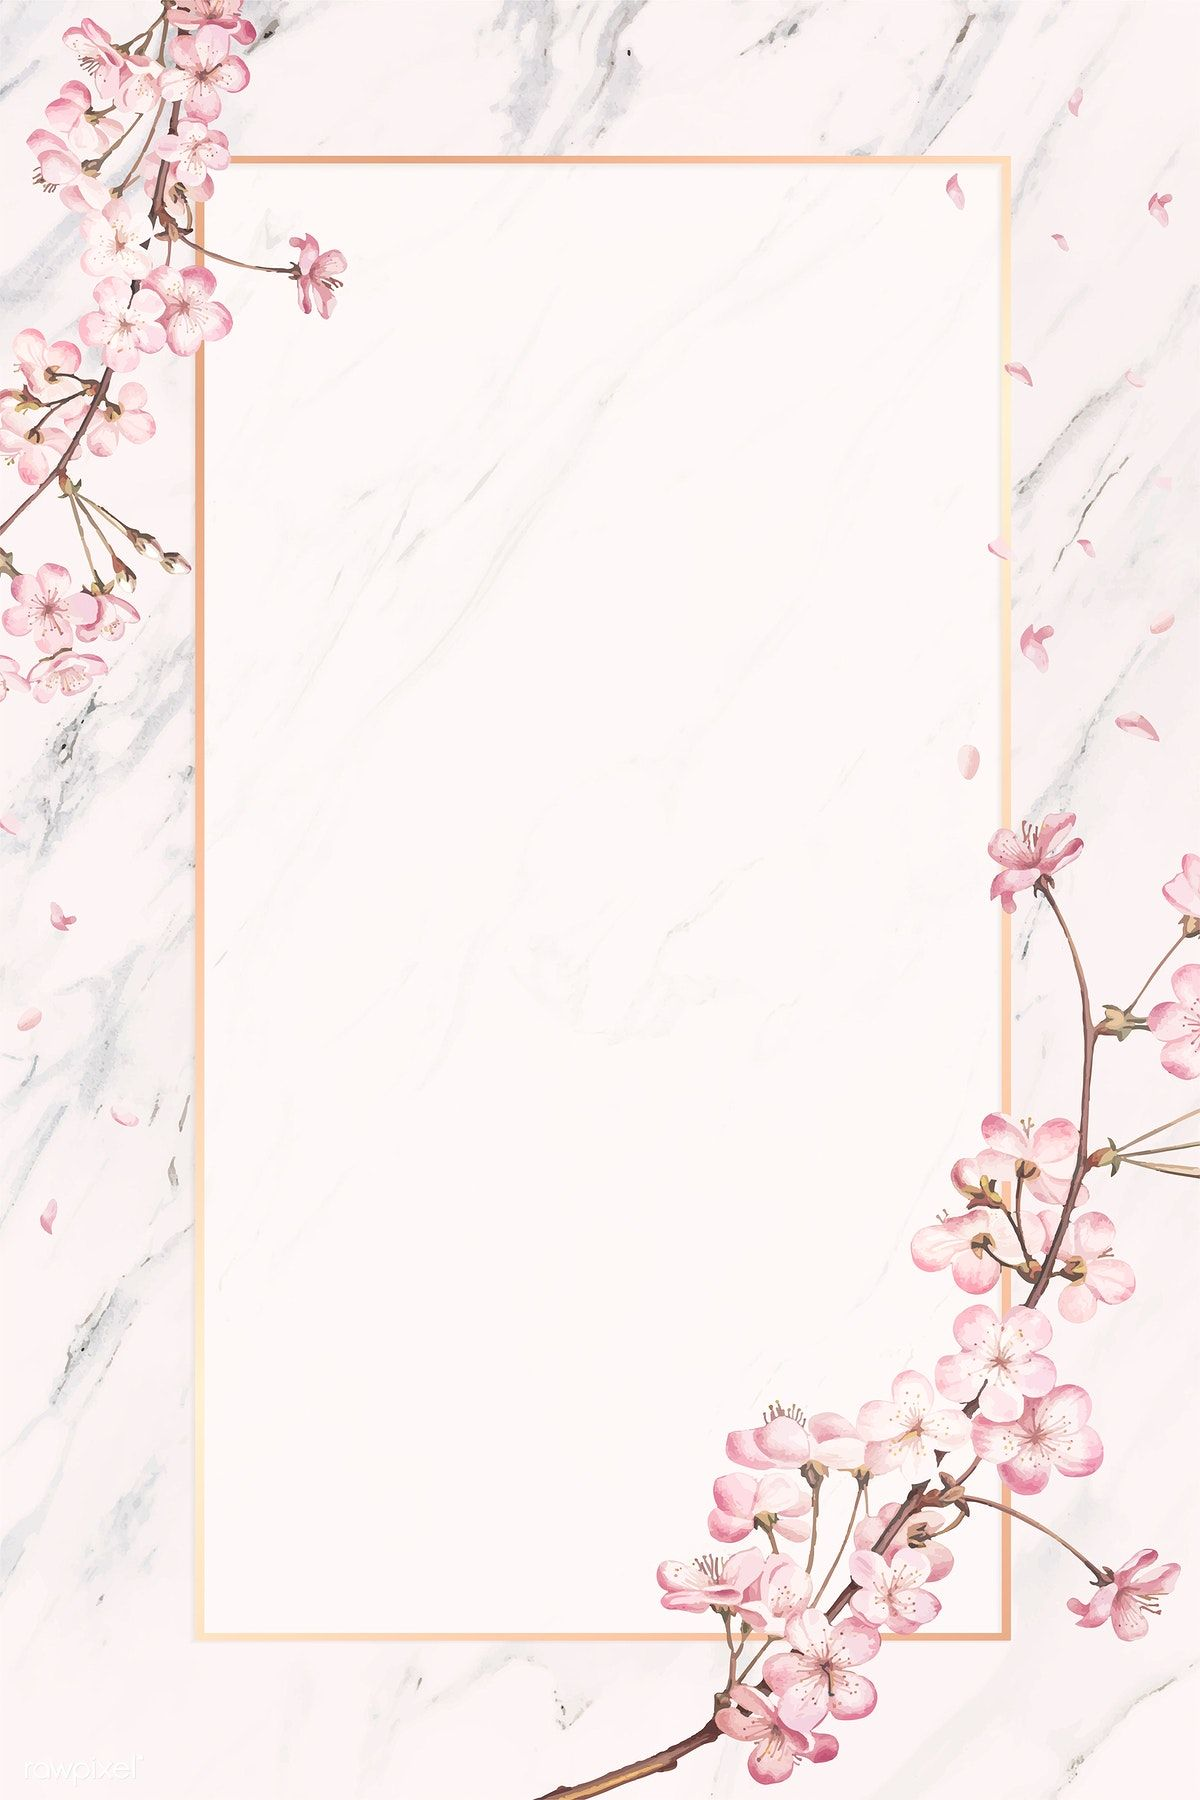 Download premium illustration of Pink floral frame card